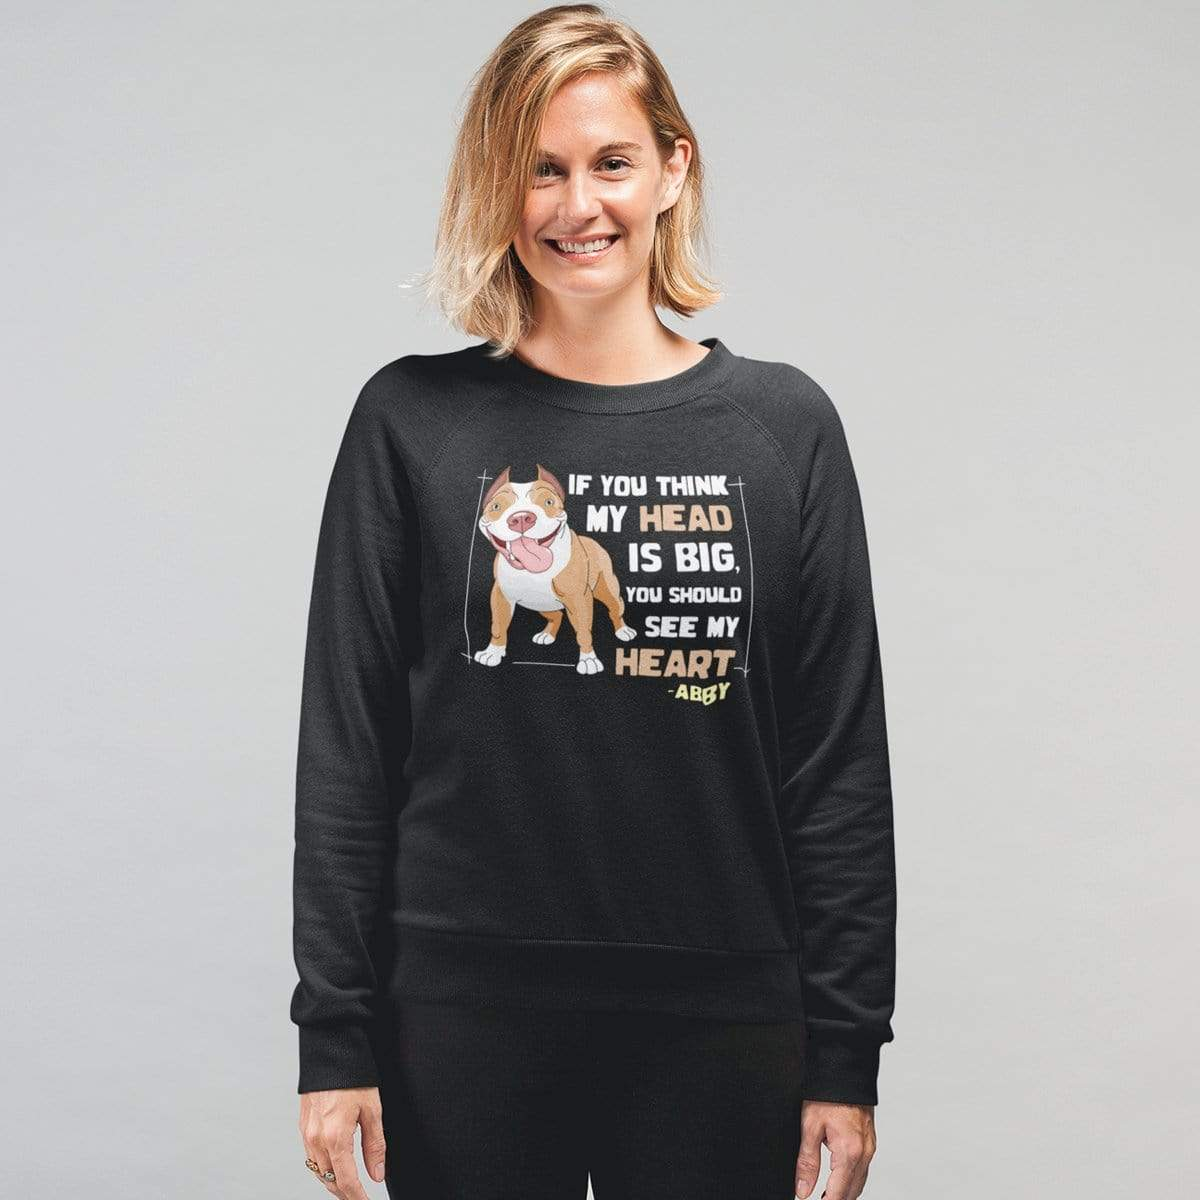 Personalized Dog Mom Gifts By Pupnpaws Cotton Sweatshirt Black / S If You Think My Head Is Big... Customized Sweatshirt For Dog Lovers